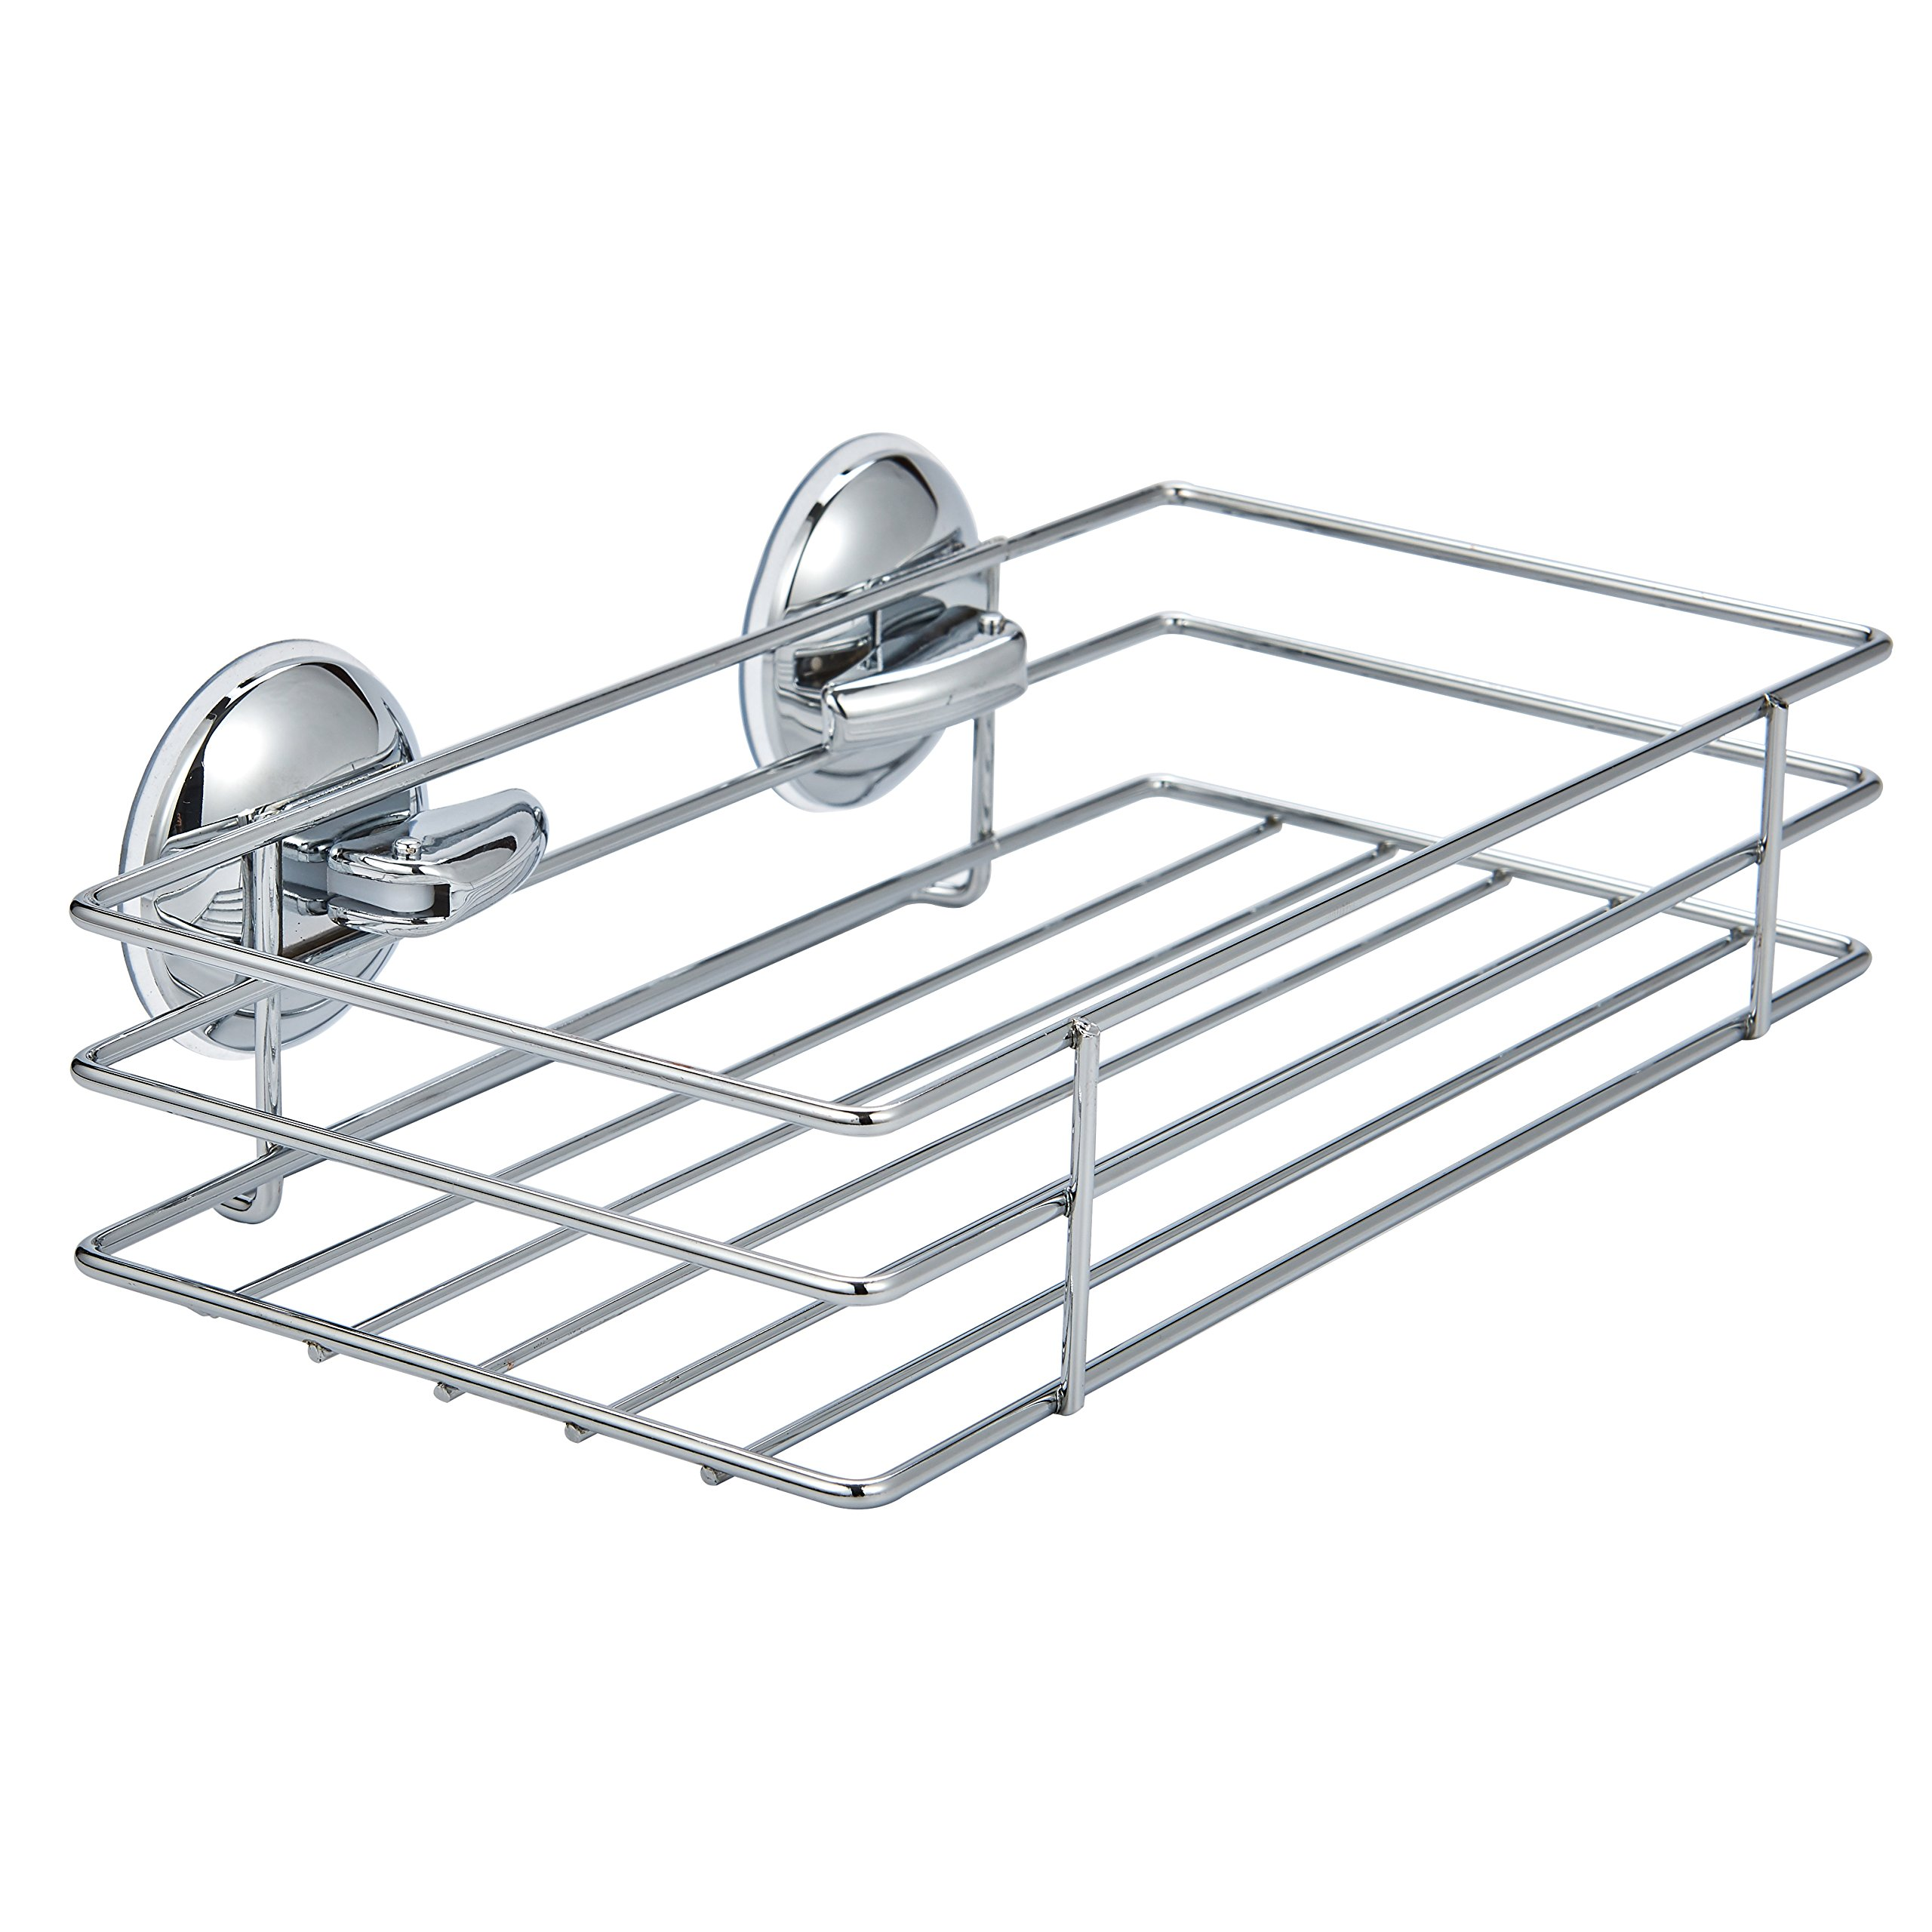 Shower Caddy Storage Shower Shelf Basket with Powerful Vacuum Suction Cup Stainless Steel Chrome Storage Basket and Shelf for Shampoo Conditioner, Soap, Razor Bathroom & Kitchen Rack